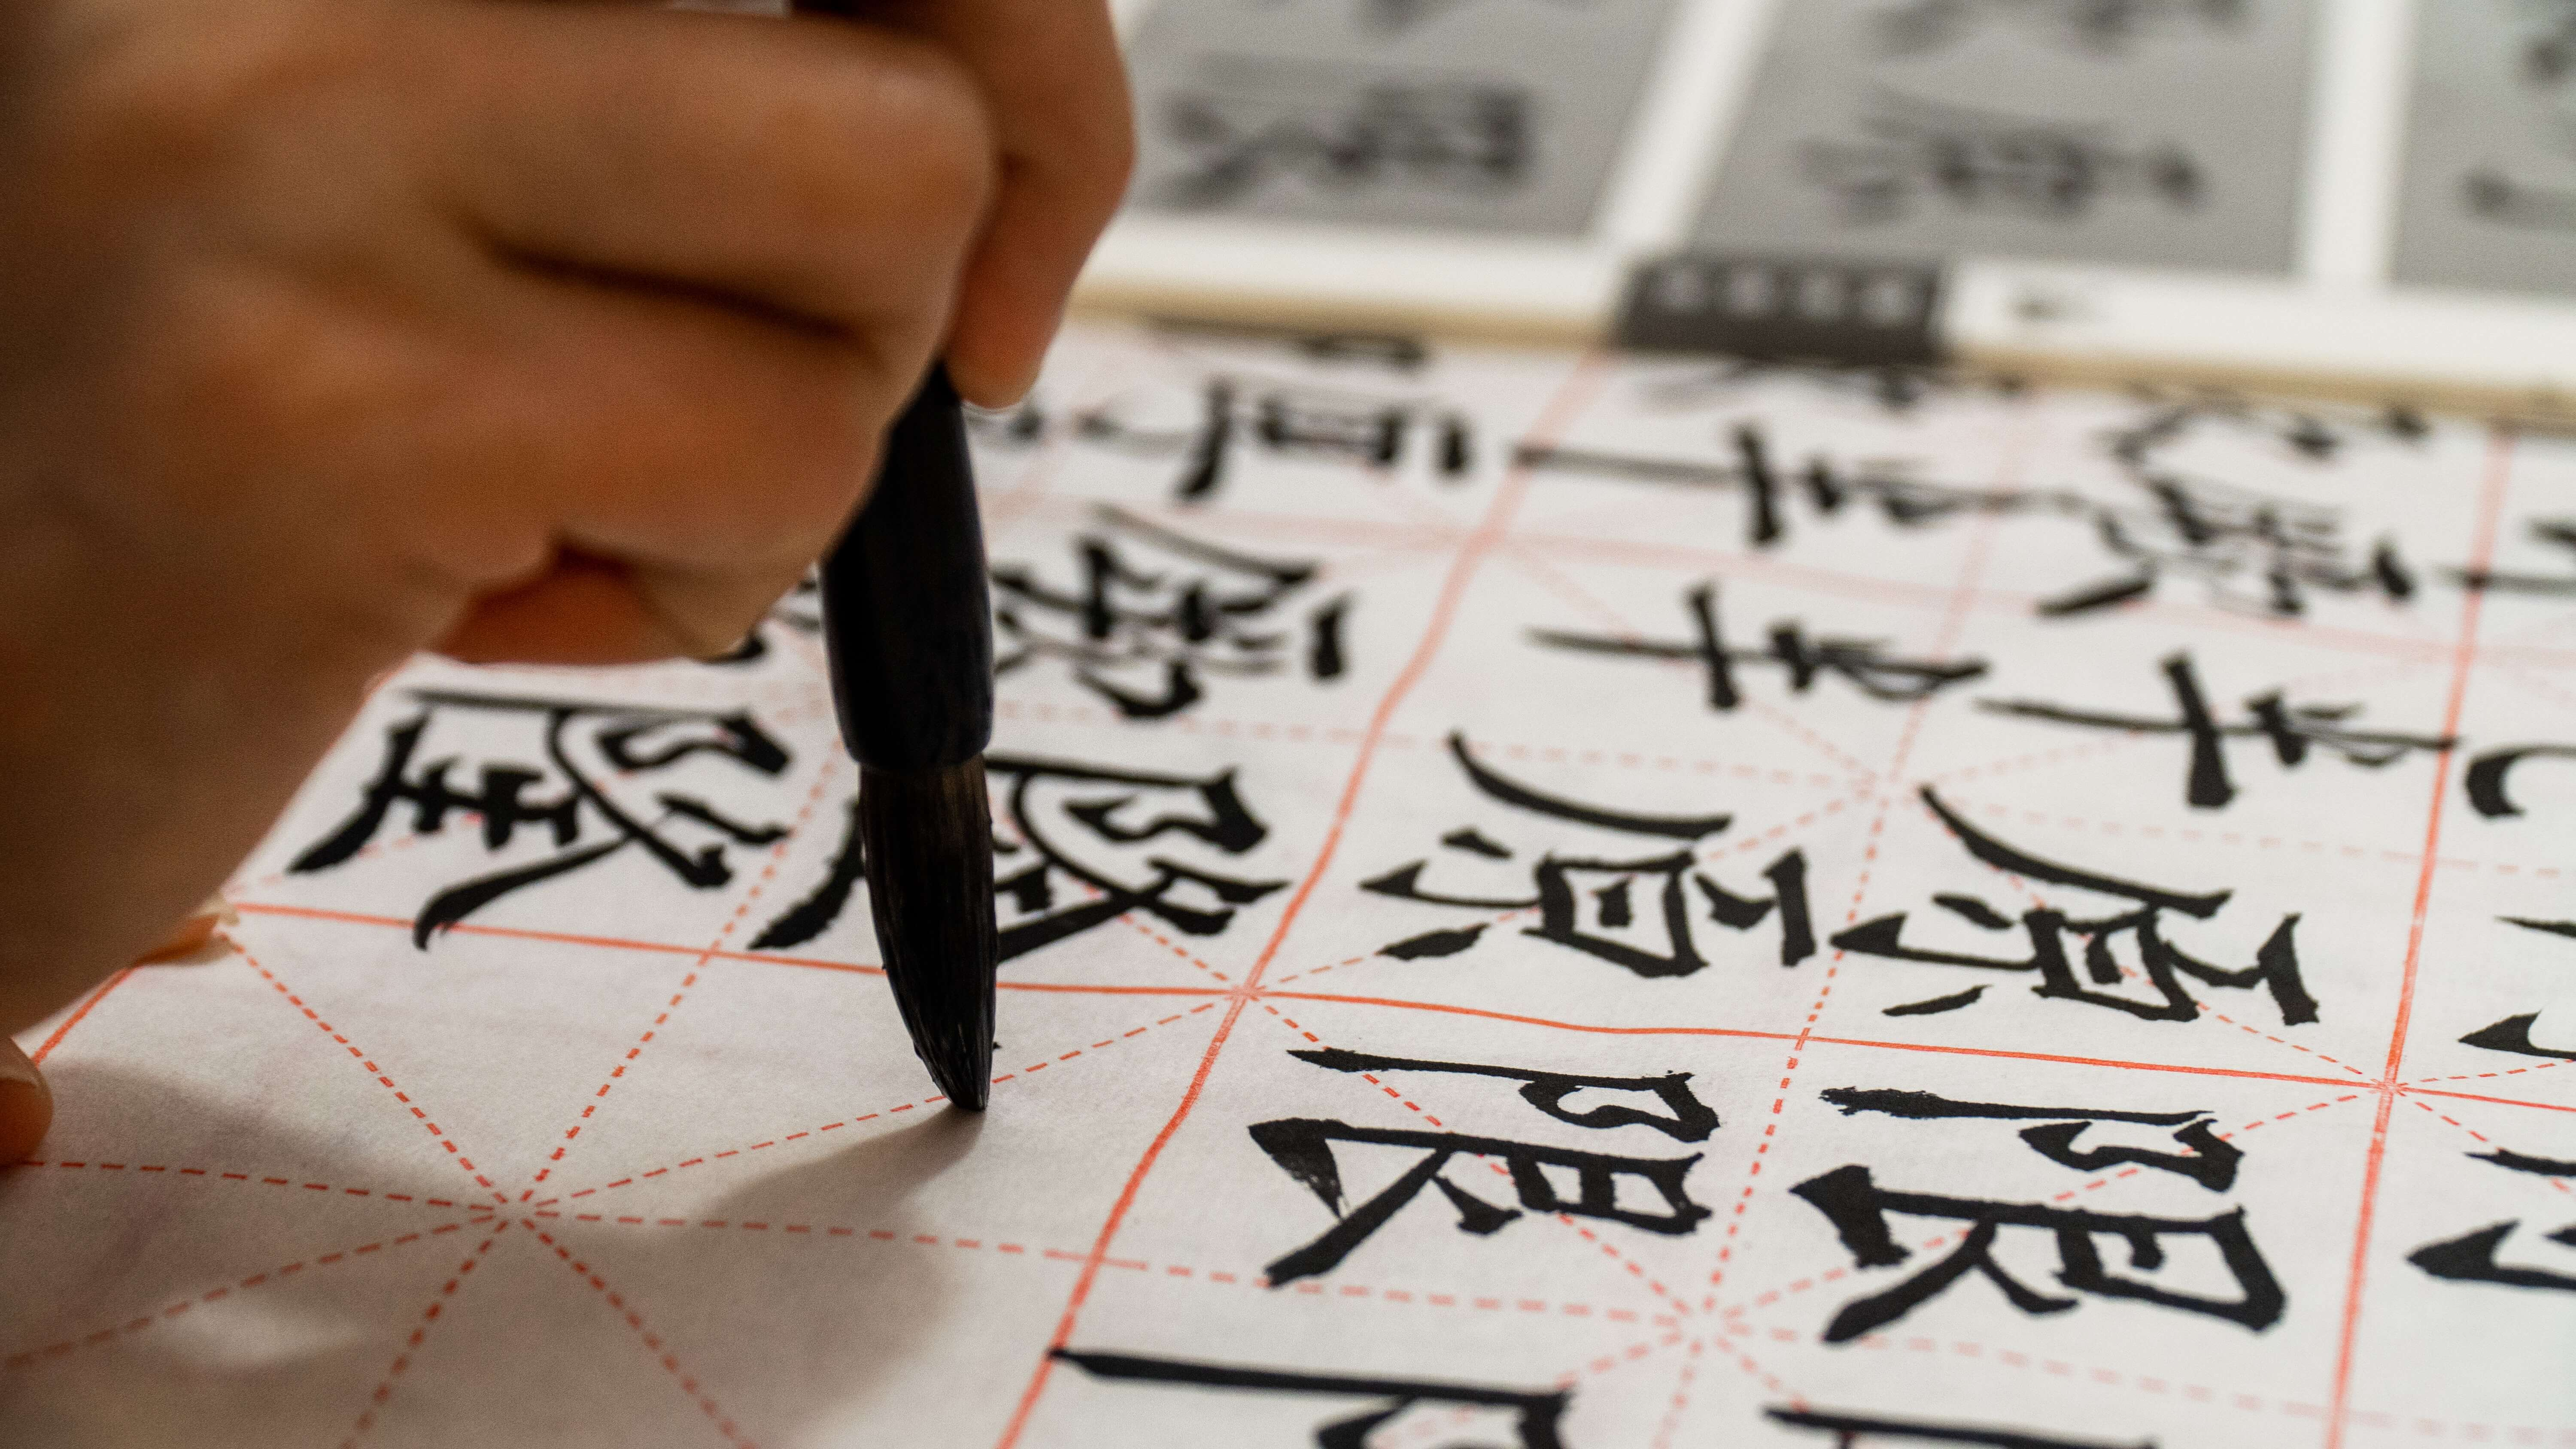 How to Effectively Study Chinese: Learning Chinese Doesn't Have to be Scary